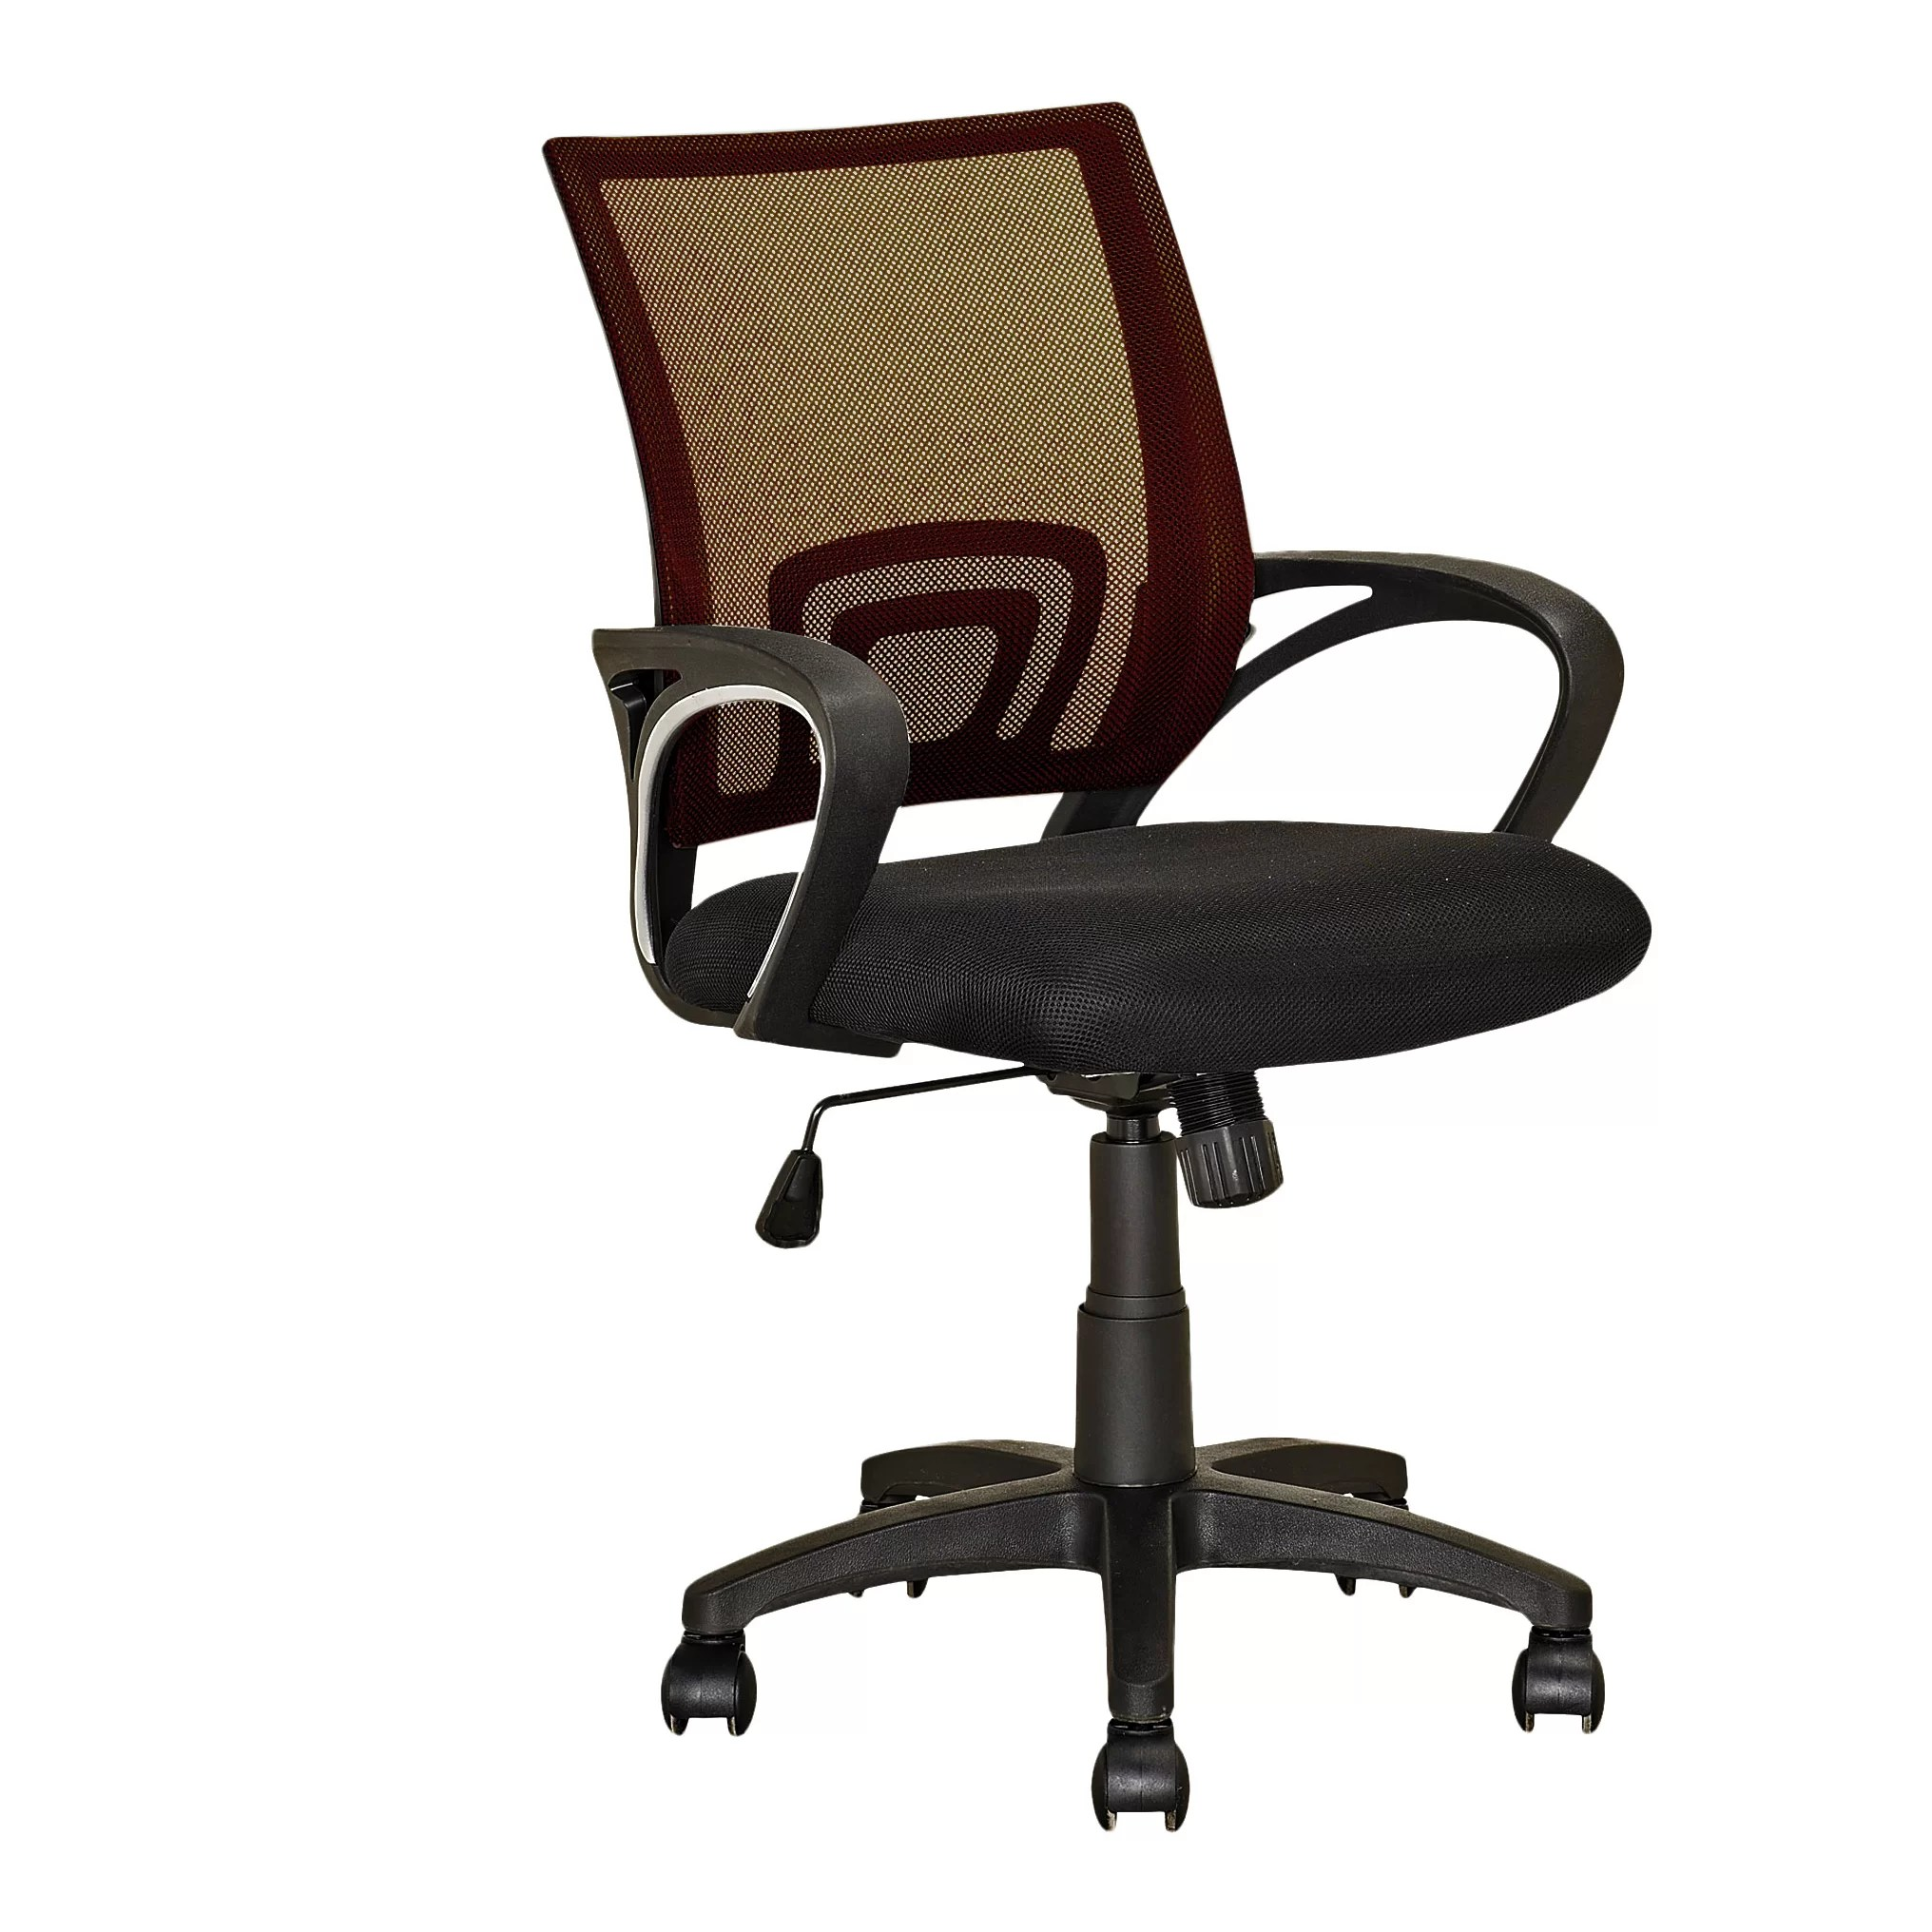 desk chair reviews stacking resin chairs dcor design mesh and wayfair